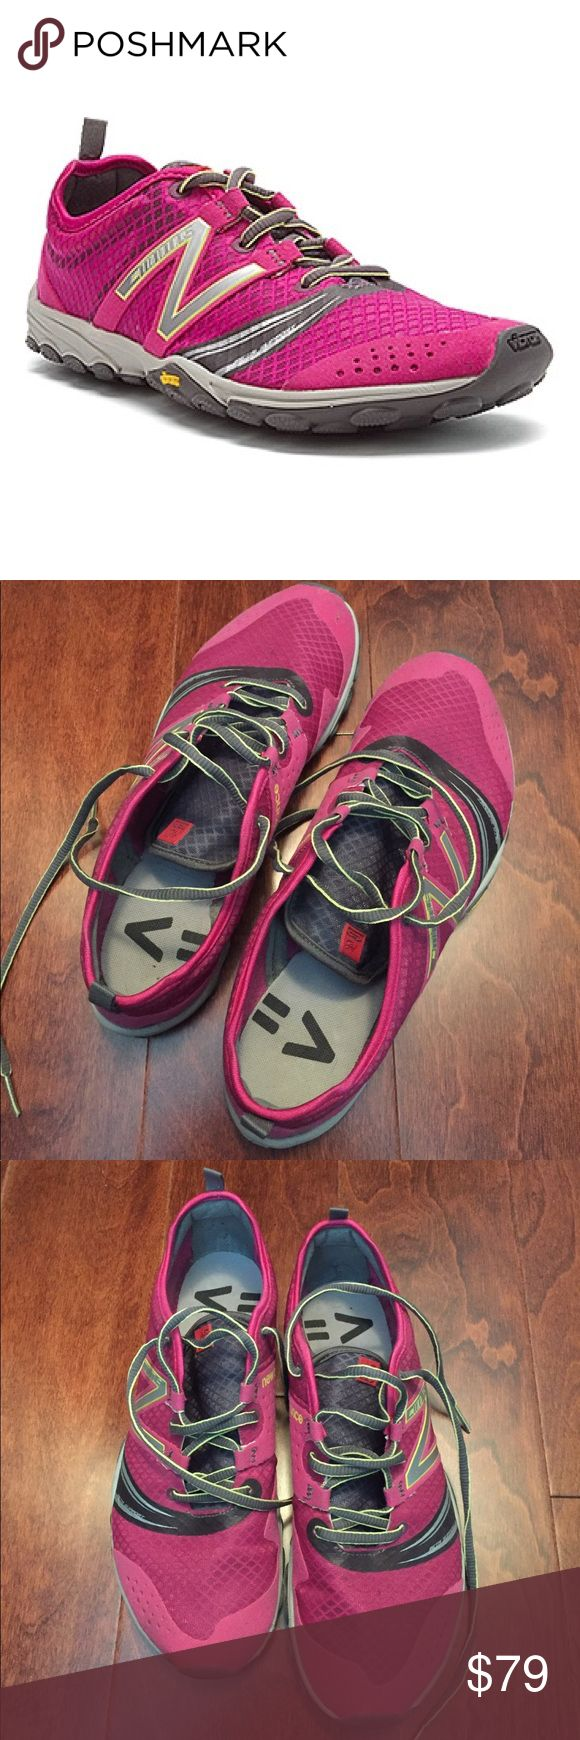 New Balance Minimus WT20BG2 Trail Running Shoe, 9 Pink/Black.  In great condition, like new, lots of tread left.  Circa 2013. New Balance Shoes Sneakers